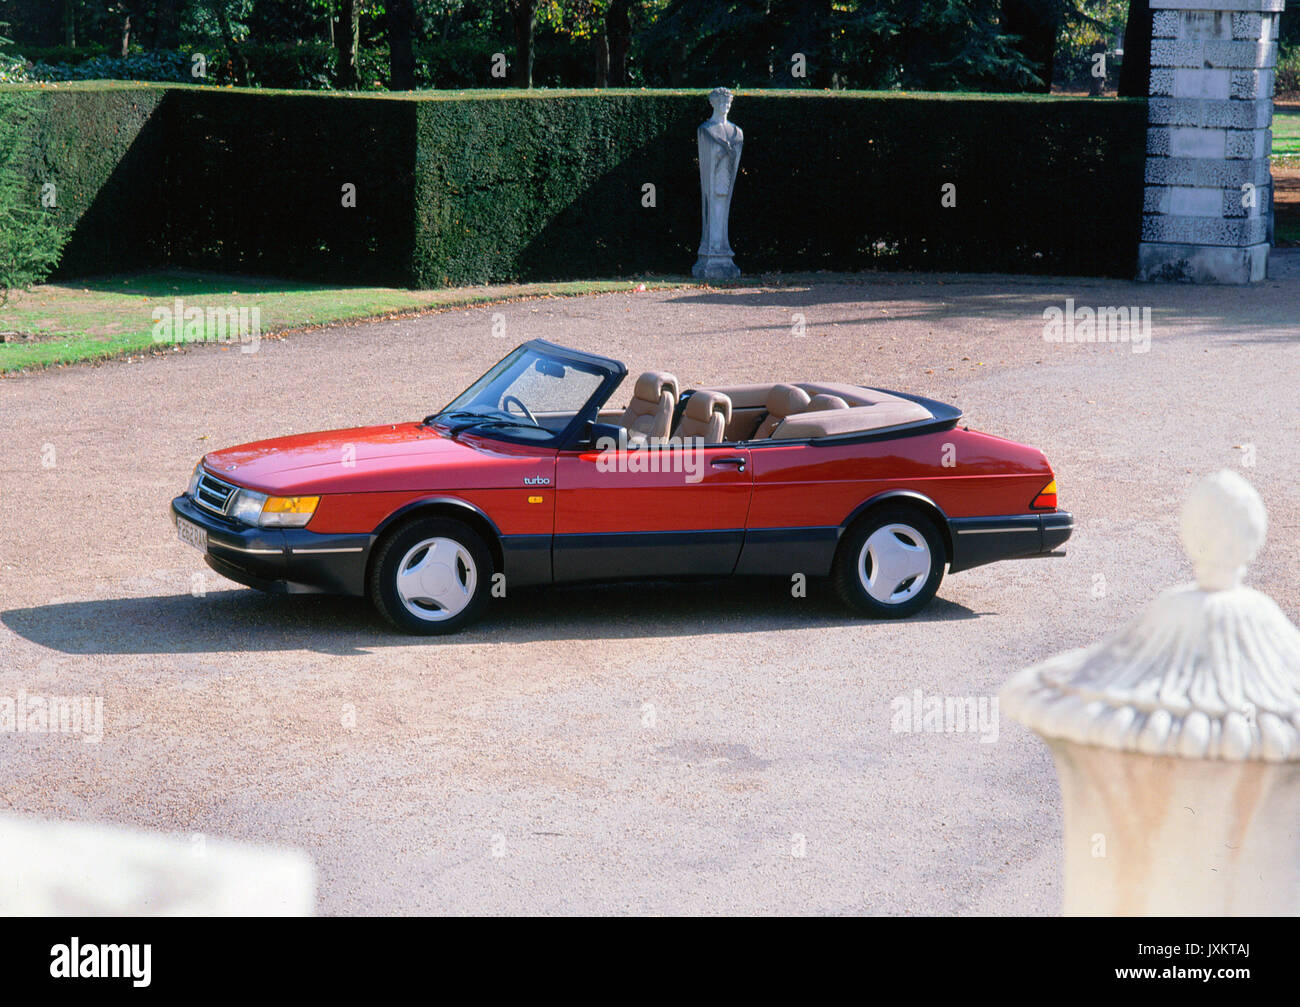 1989 Saab 900 turbo cabriolet Photo Stock